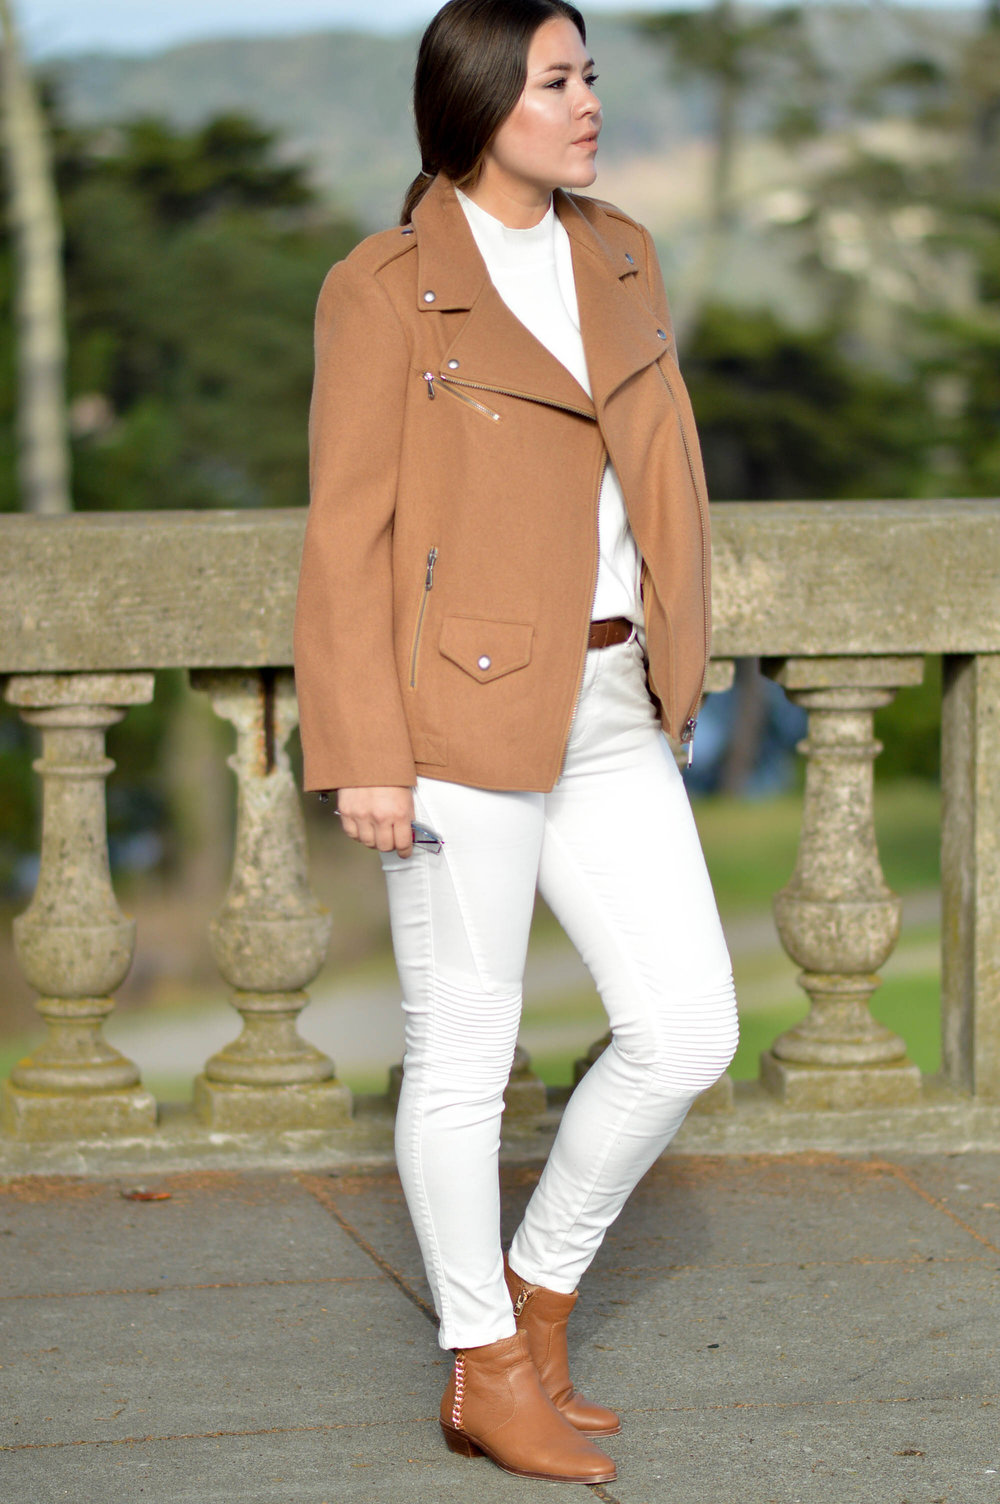 Fall Neutrals | Rebecca Minkoff Jacket with white on white look via. www.birdieshoots.com